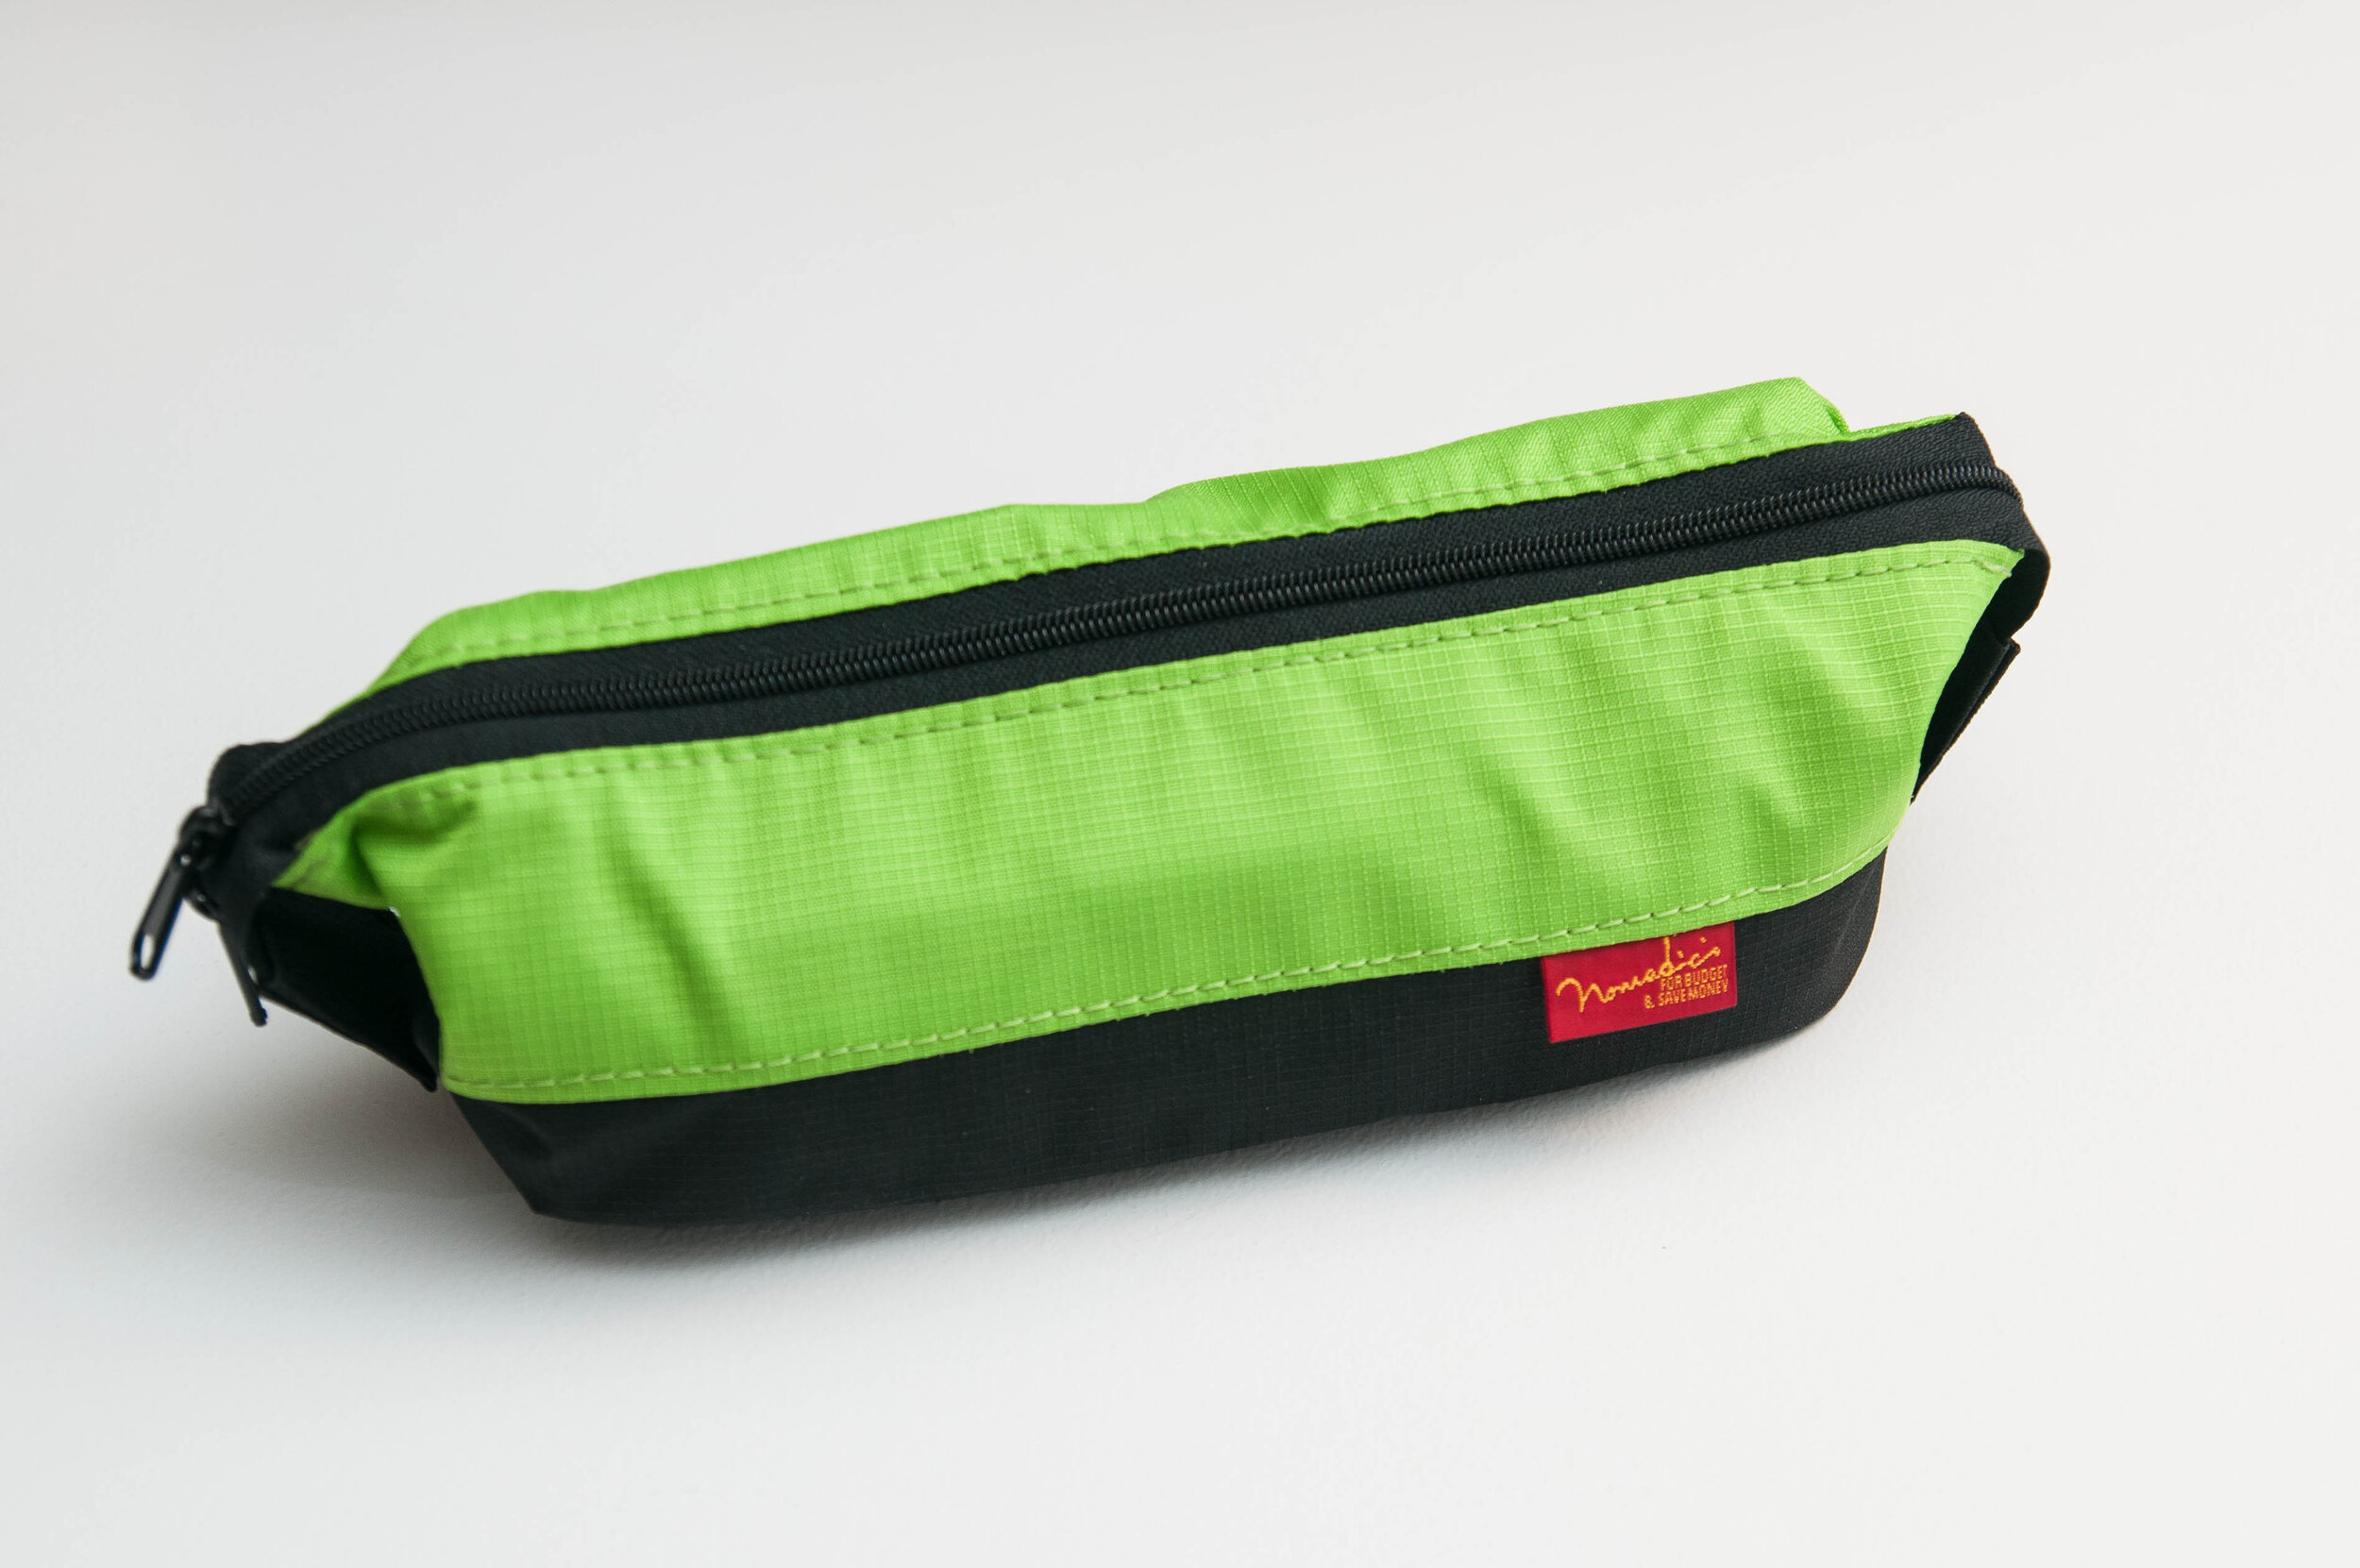 Nomadic PW-11 Boat Shaped Pen Case Review